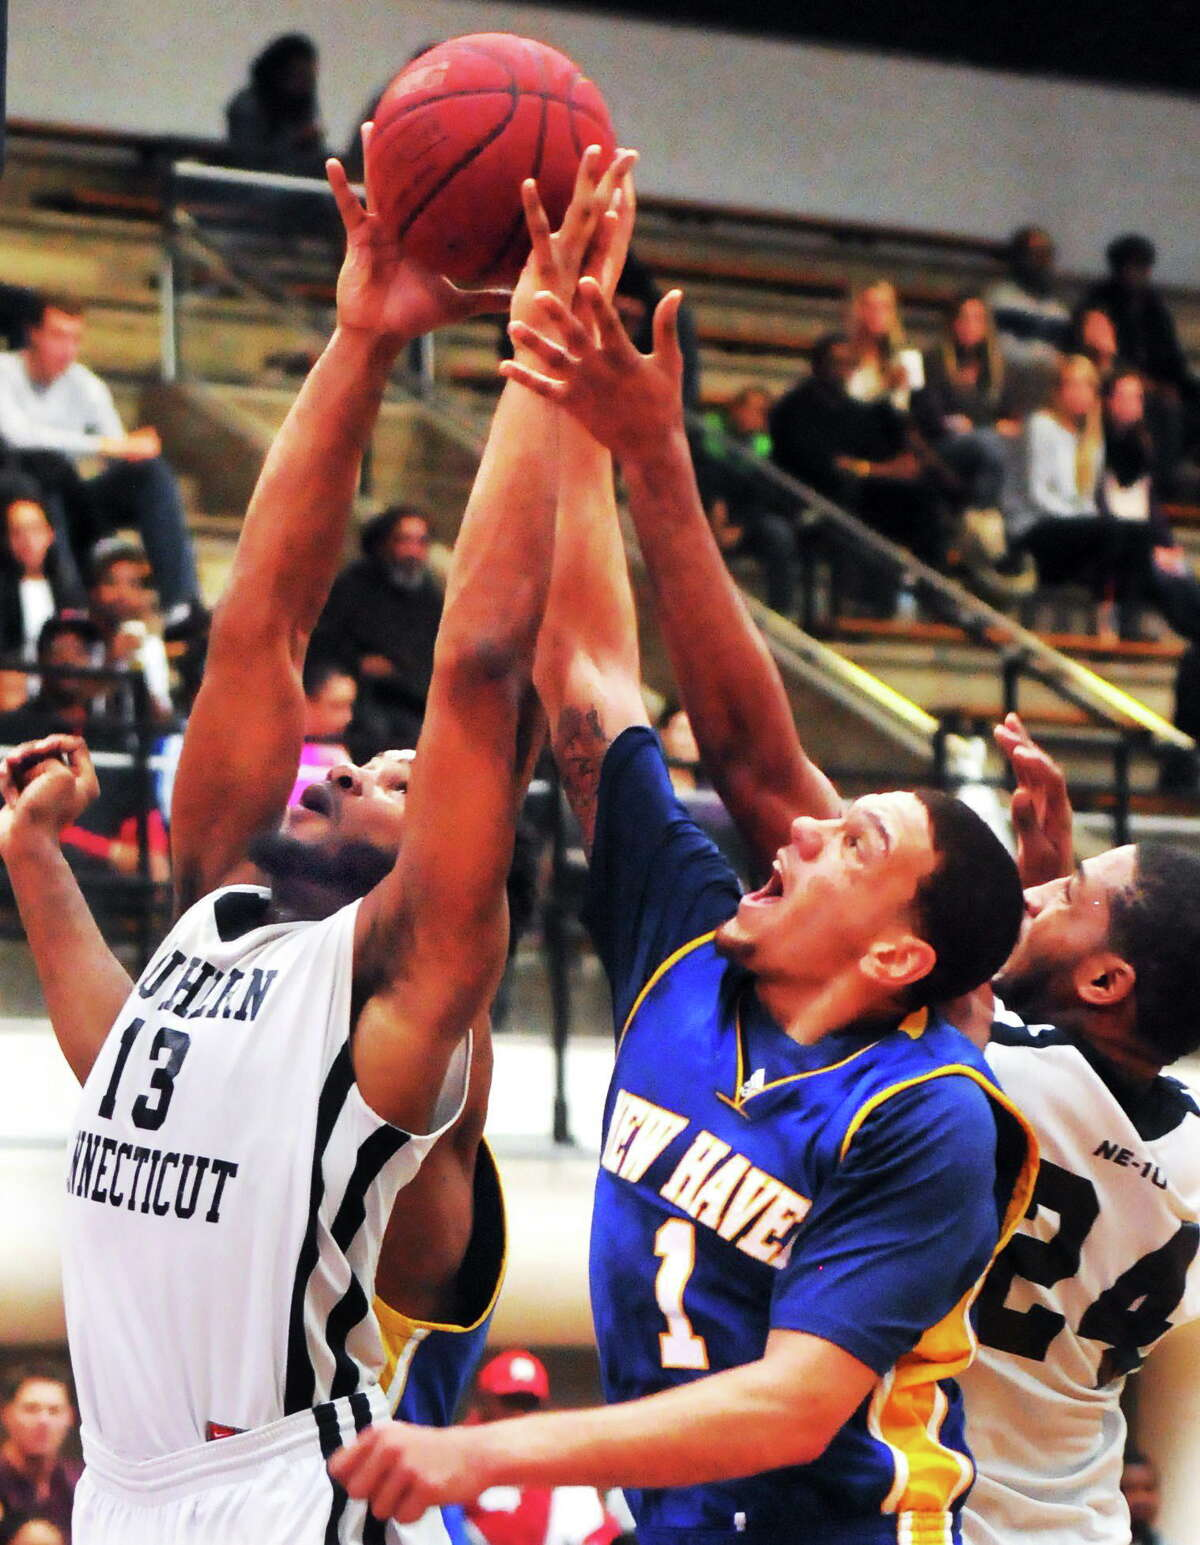 Mara Lavitt — Register SCSU's Greg Langston (13) fights for a rebound with New Haven's Jonny Ocasio during Sunday's game.